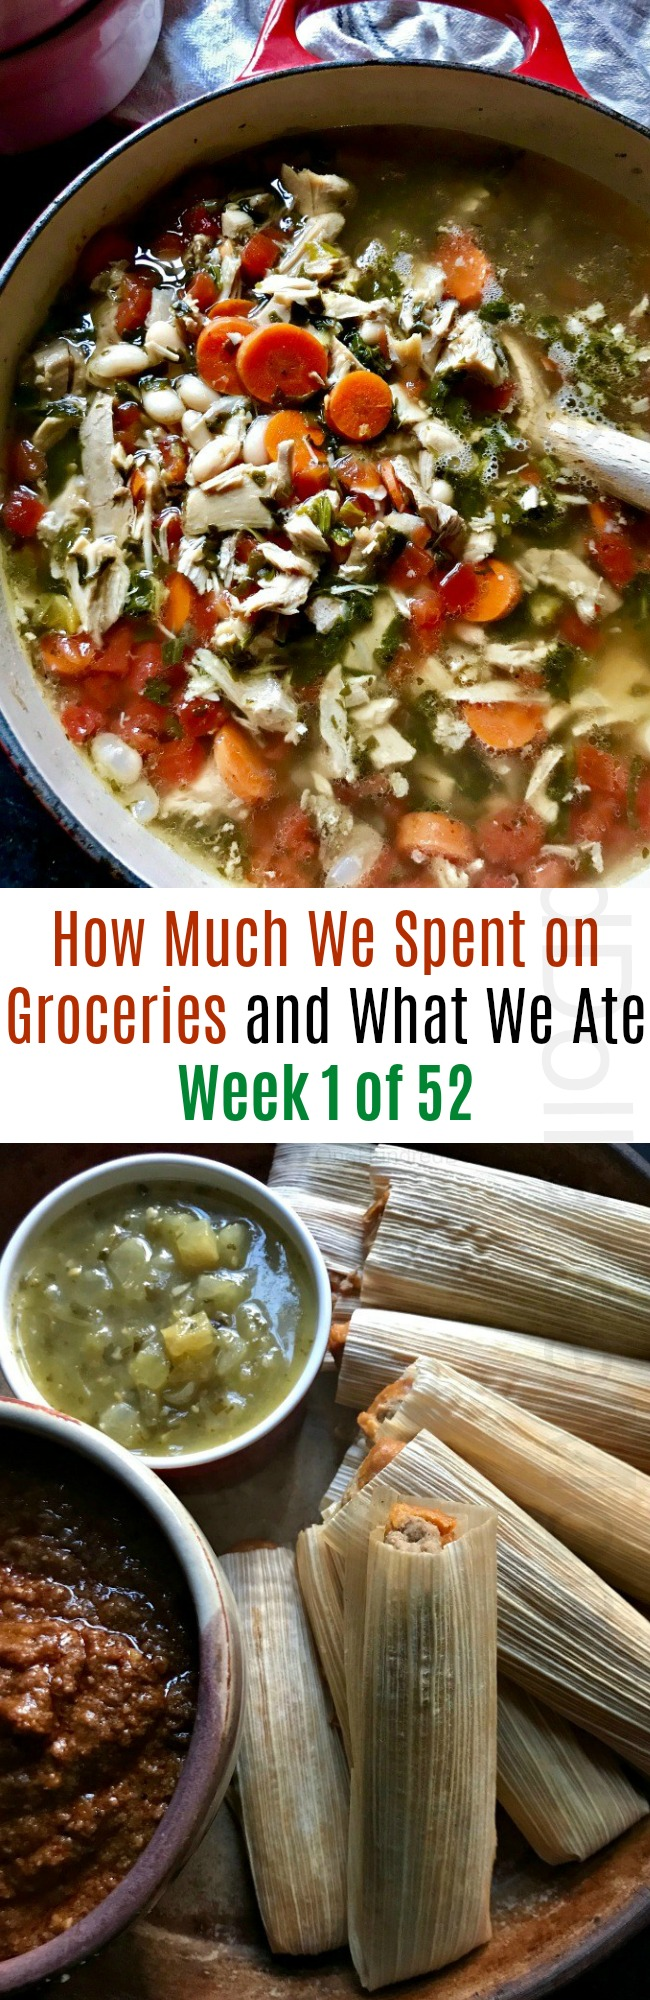 How Much We Spent on Groceries and What We Ate – Week 1 of 52